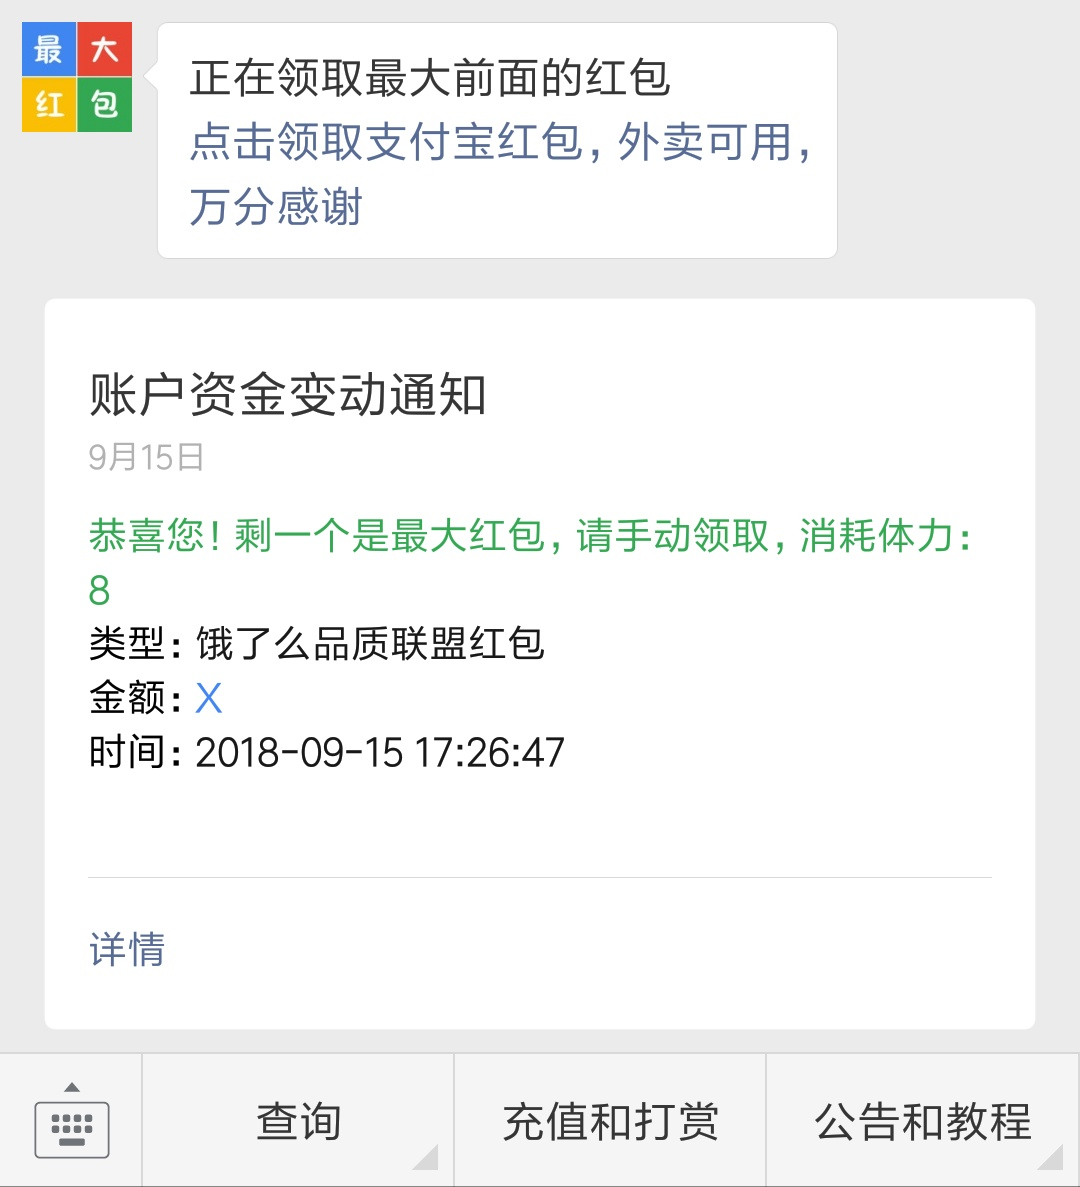 Screenshot_2018-09-15-17-42-44-211_com.tencent.mm.png